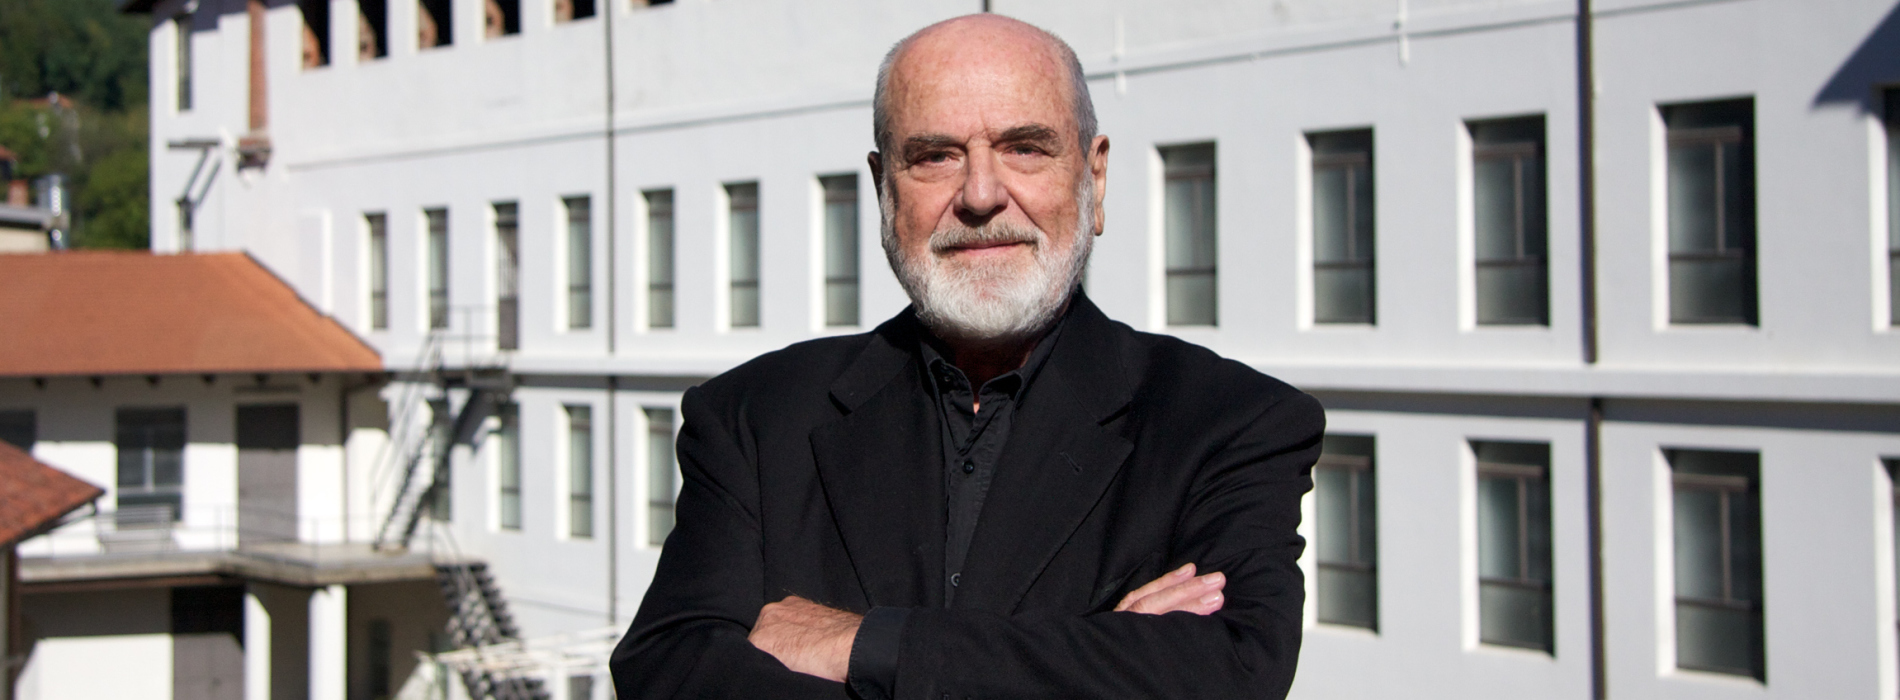 Happy Earth Days 2018. L'artista Pistoletto ospite d'onore